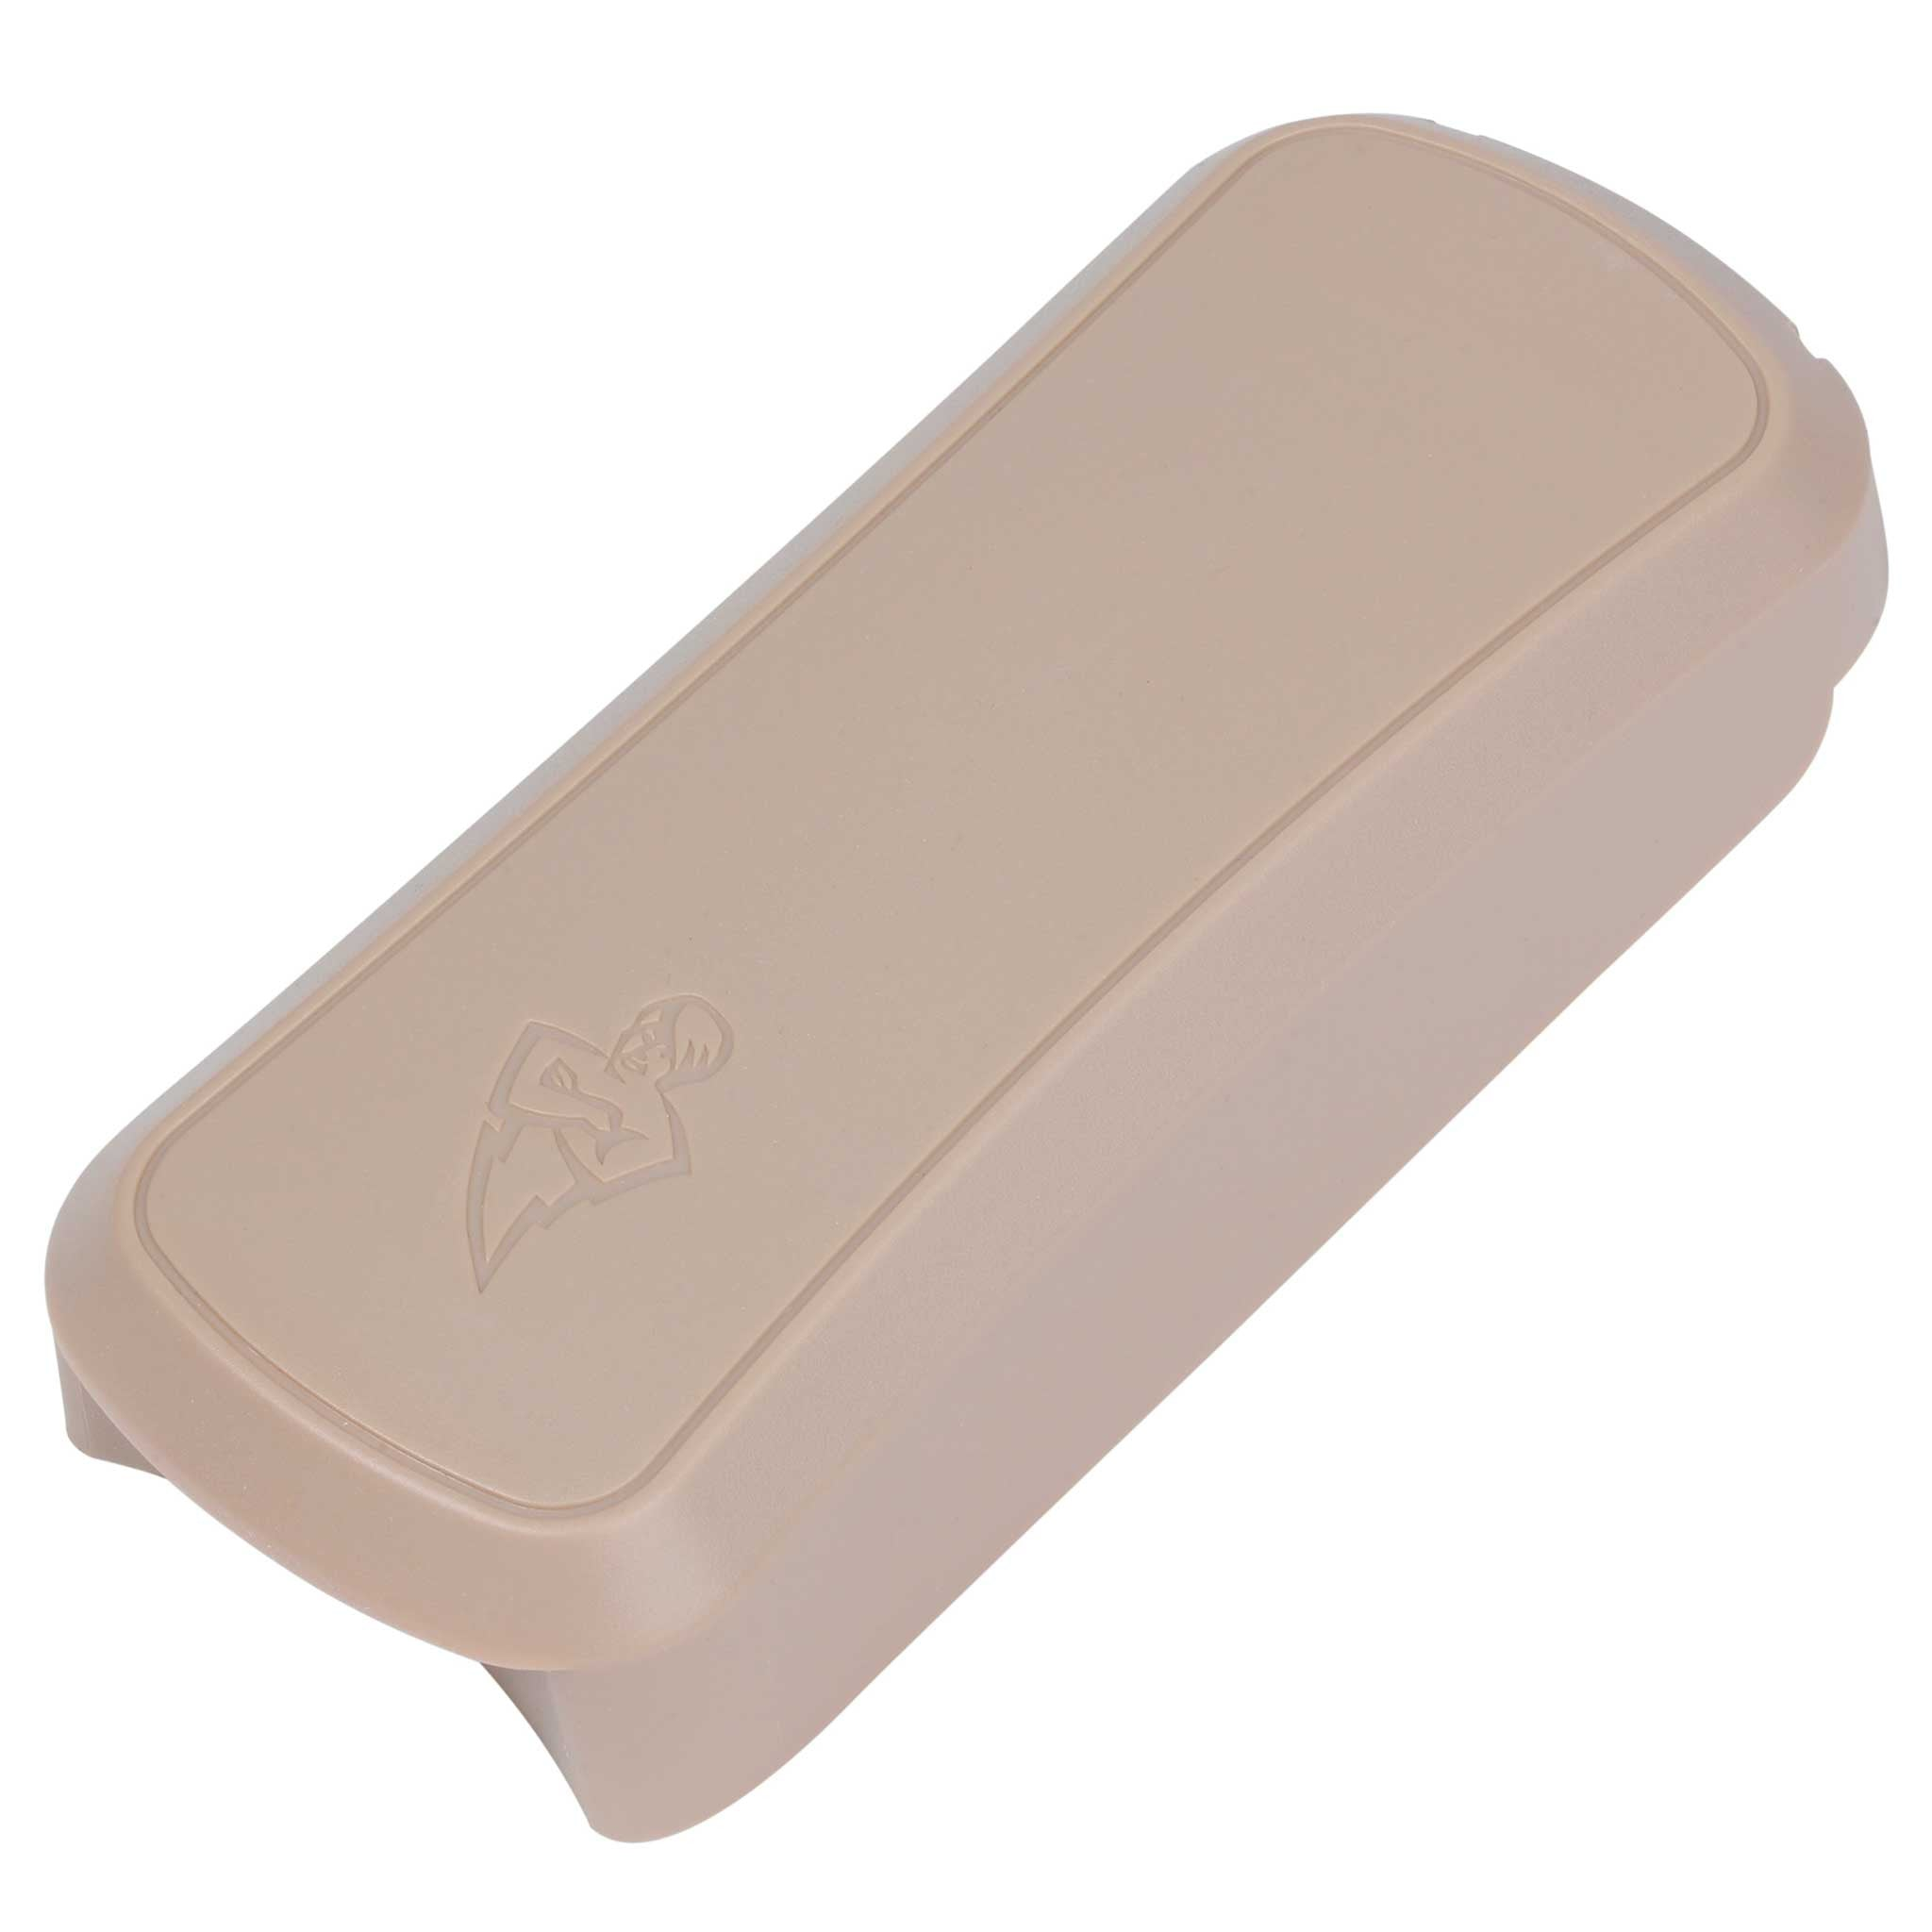 Tan Flip-Up Cover for Wireless Keyless Entry Pad (Cover Only)